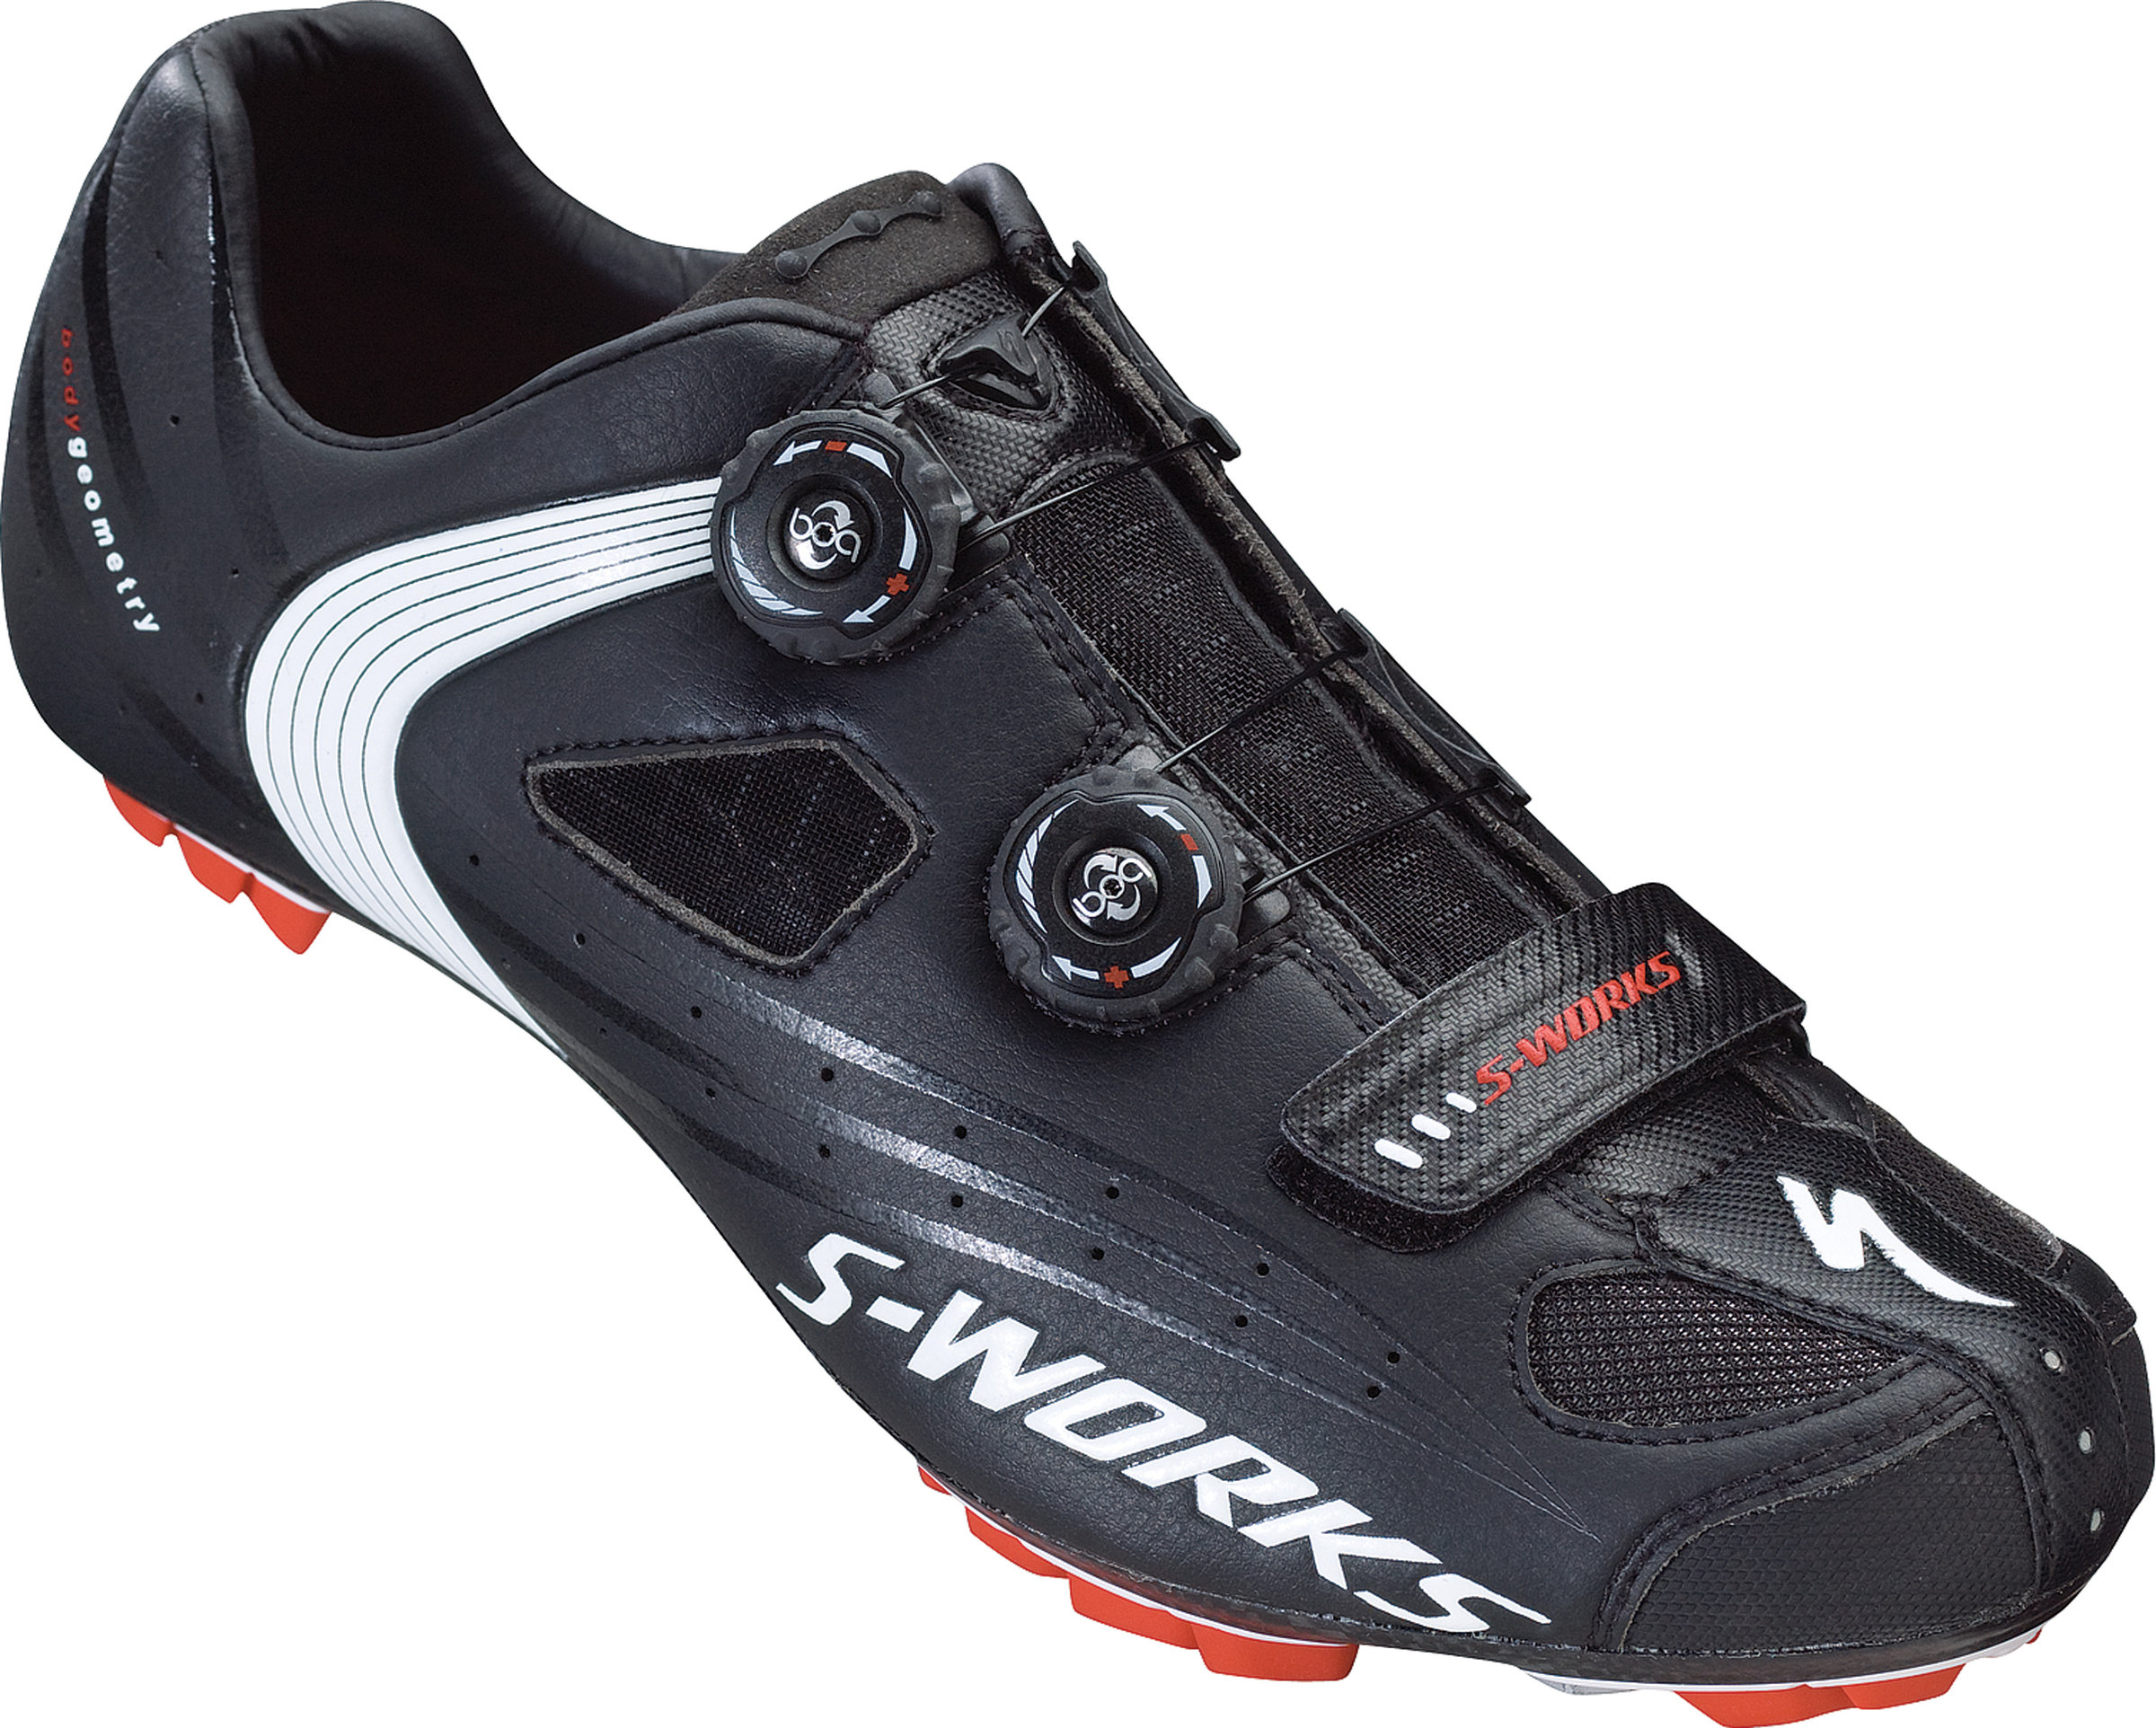 3eaeaba046c Specialized S-Works MTB Shoes - Toga! New York's Oldest and Largest ...